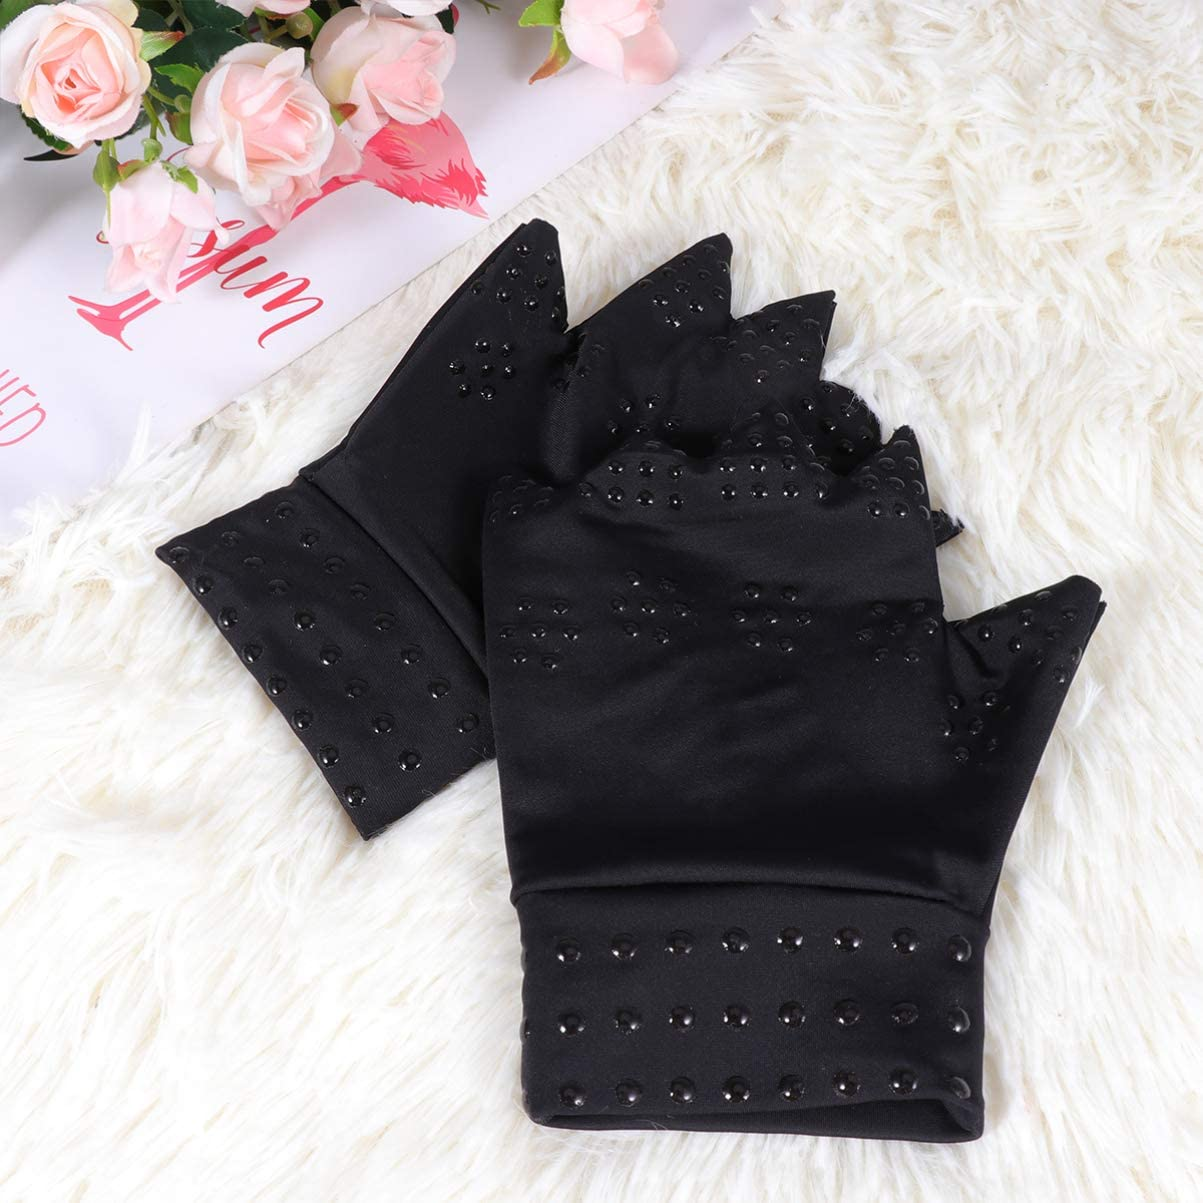 Exceart 1 Pair Arthritis Therapy Fingerless Compression Gloves Arthritis Care Gloves Finger Half Covered Gloves Fingerless Gloves Relief Hand Pain Relief Heal Joints Relief